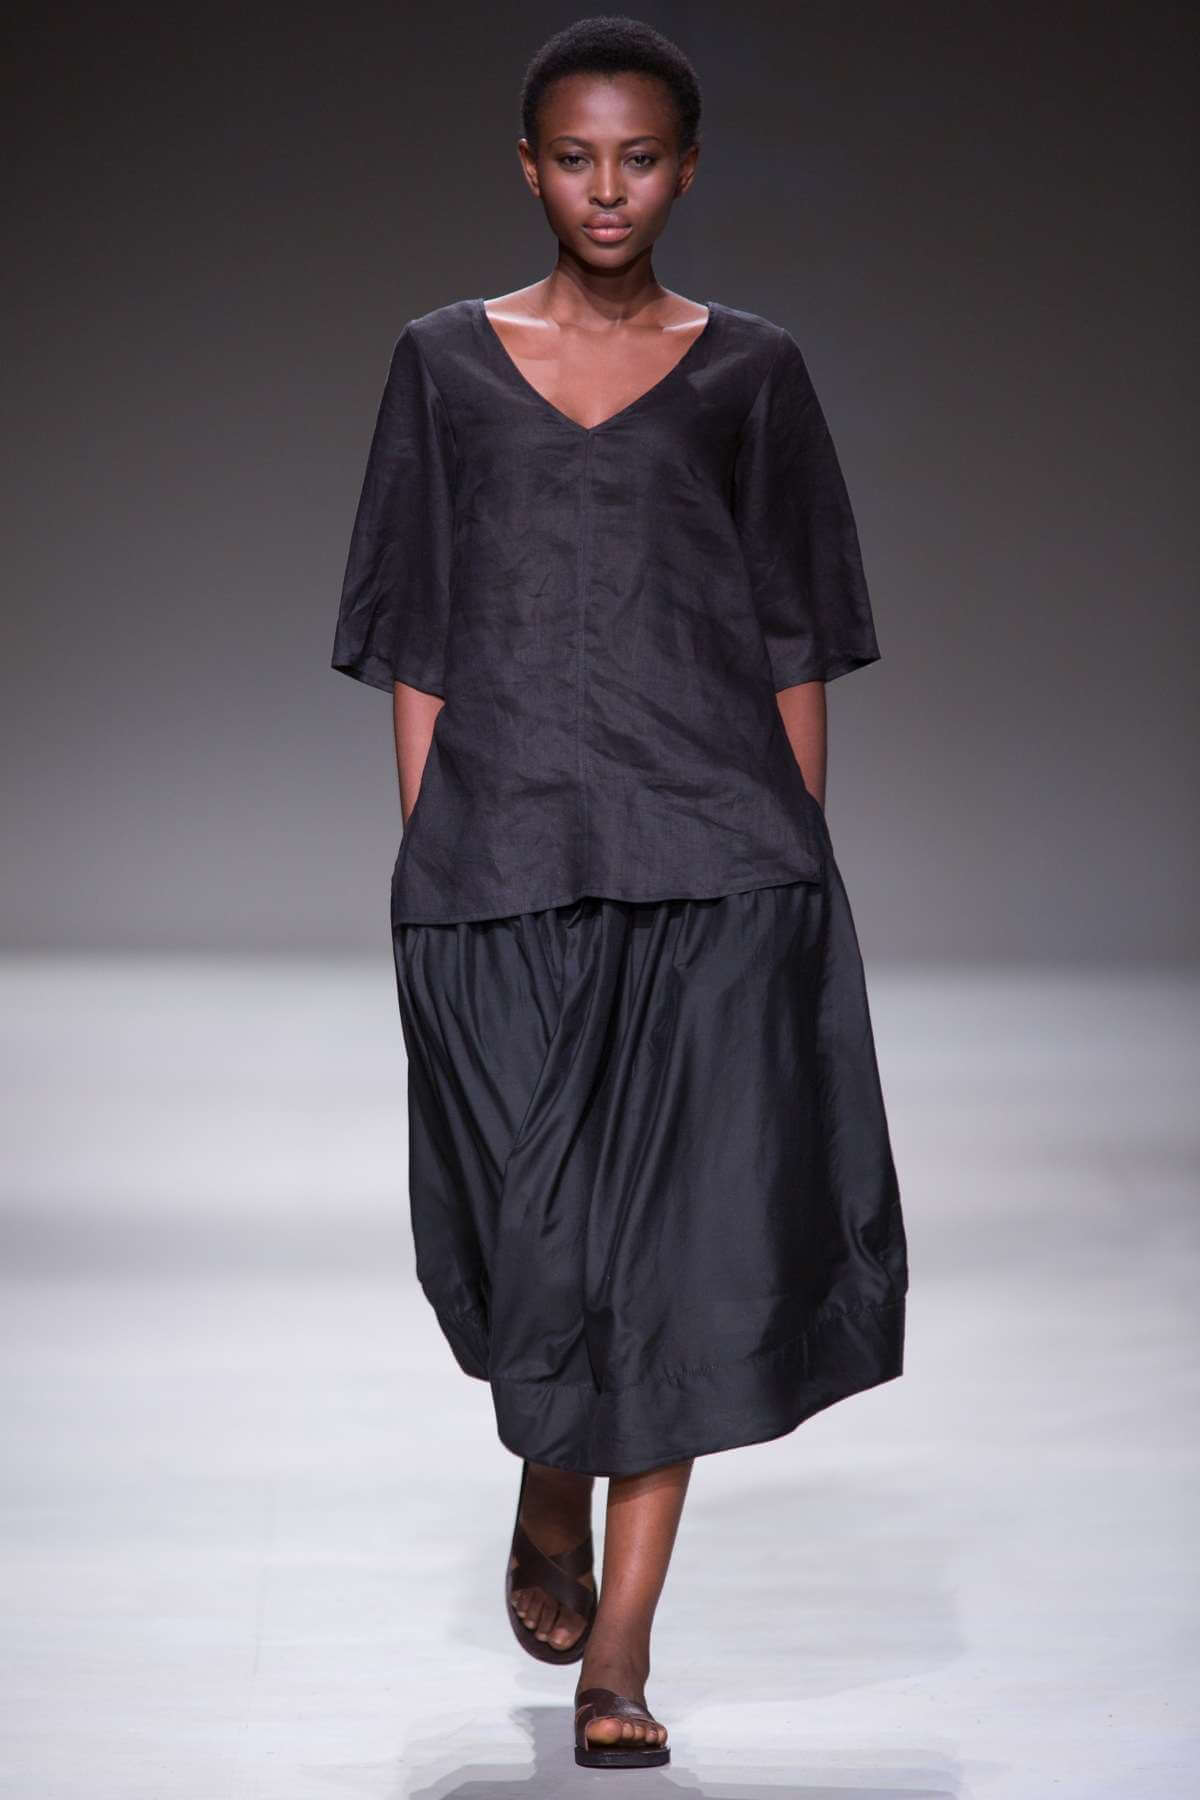 Lunar V-neck Linen Top and Gathered Skirt